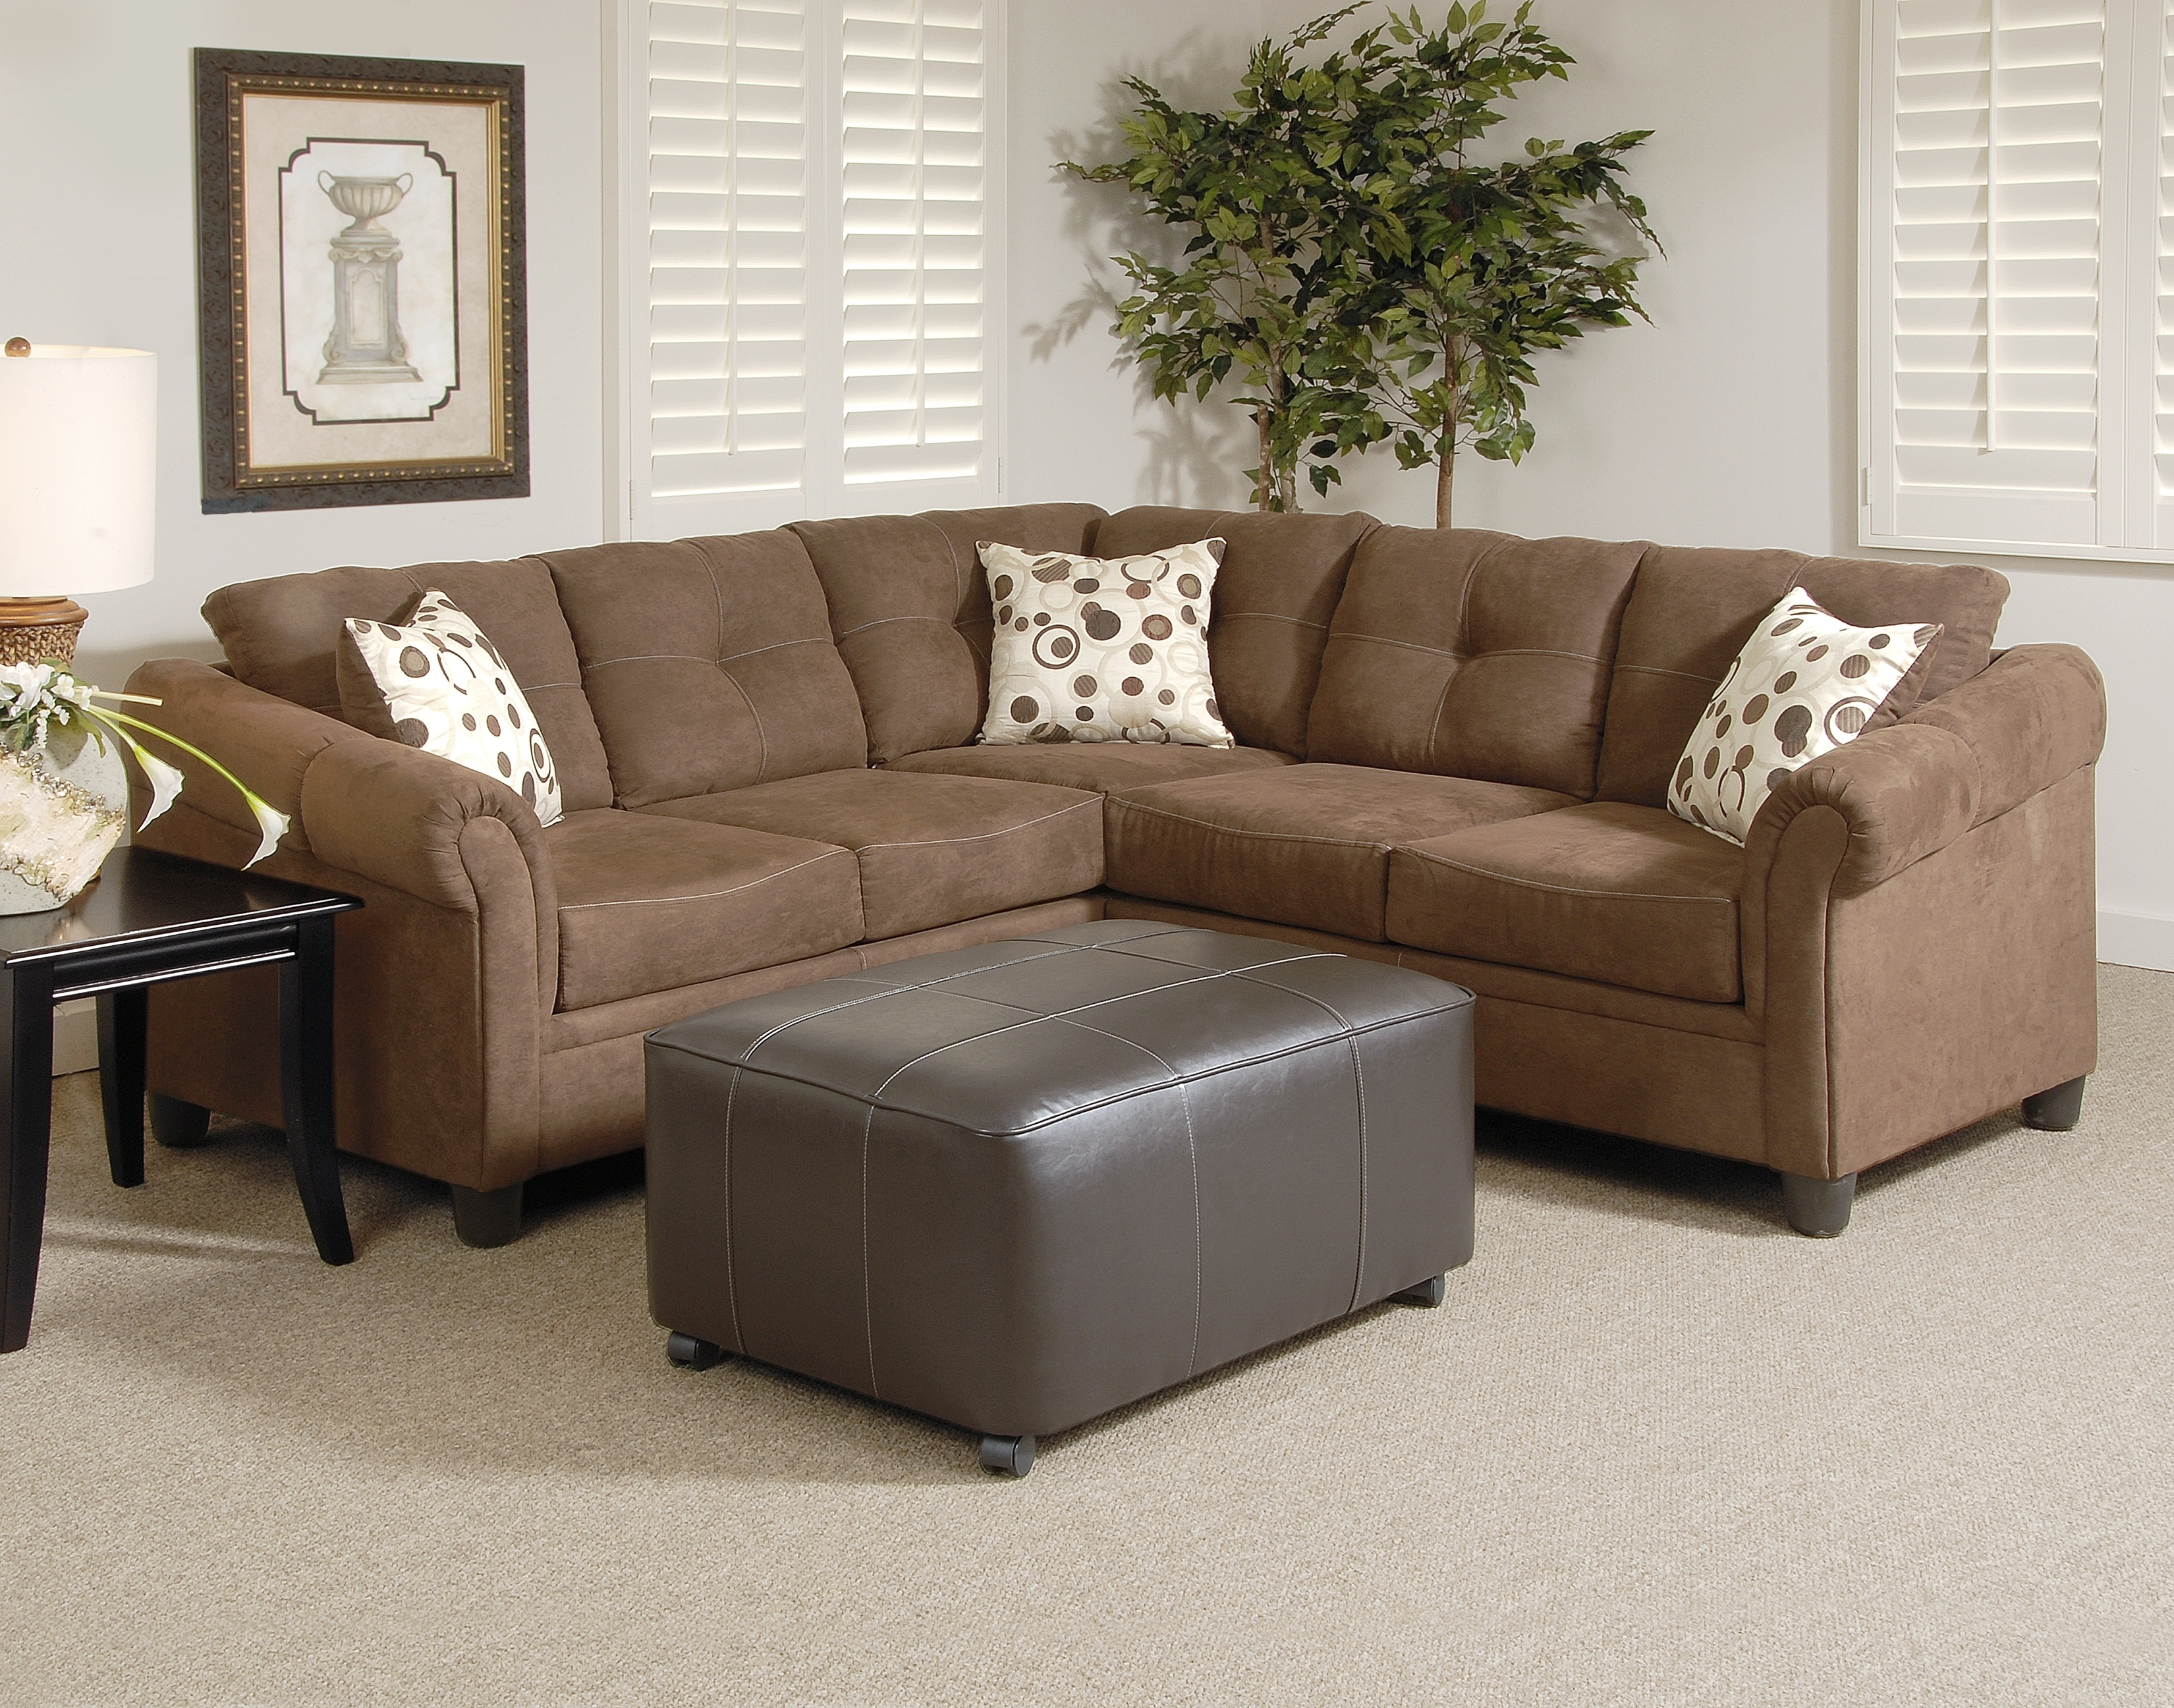 900 Chocolate Sectional | Sectionals & Ottomans | Atlantic Bedding For Sectional Sofas Under (View 3 of 10)